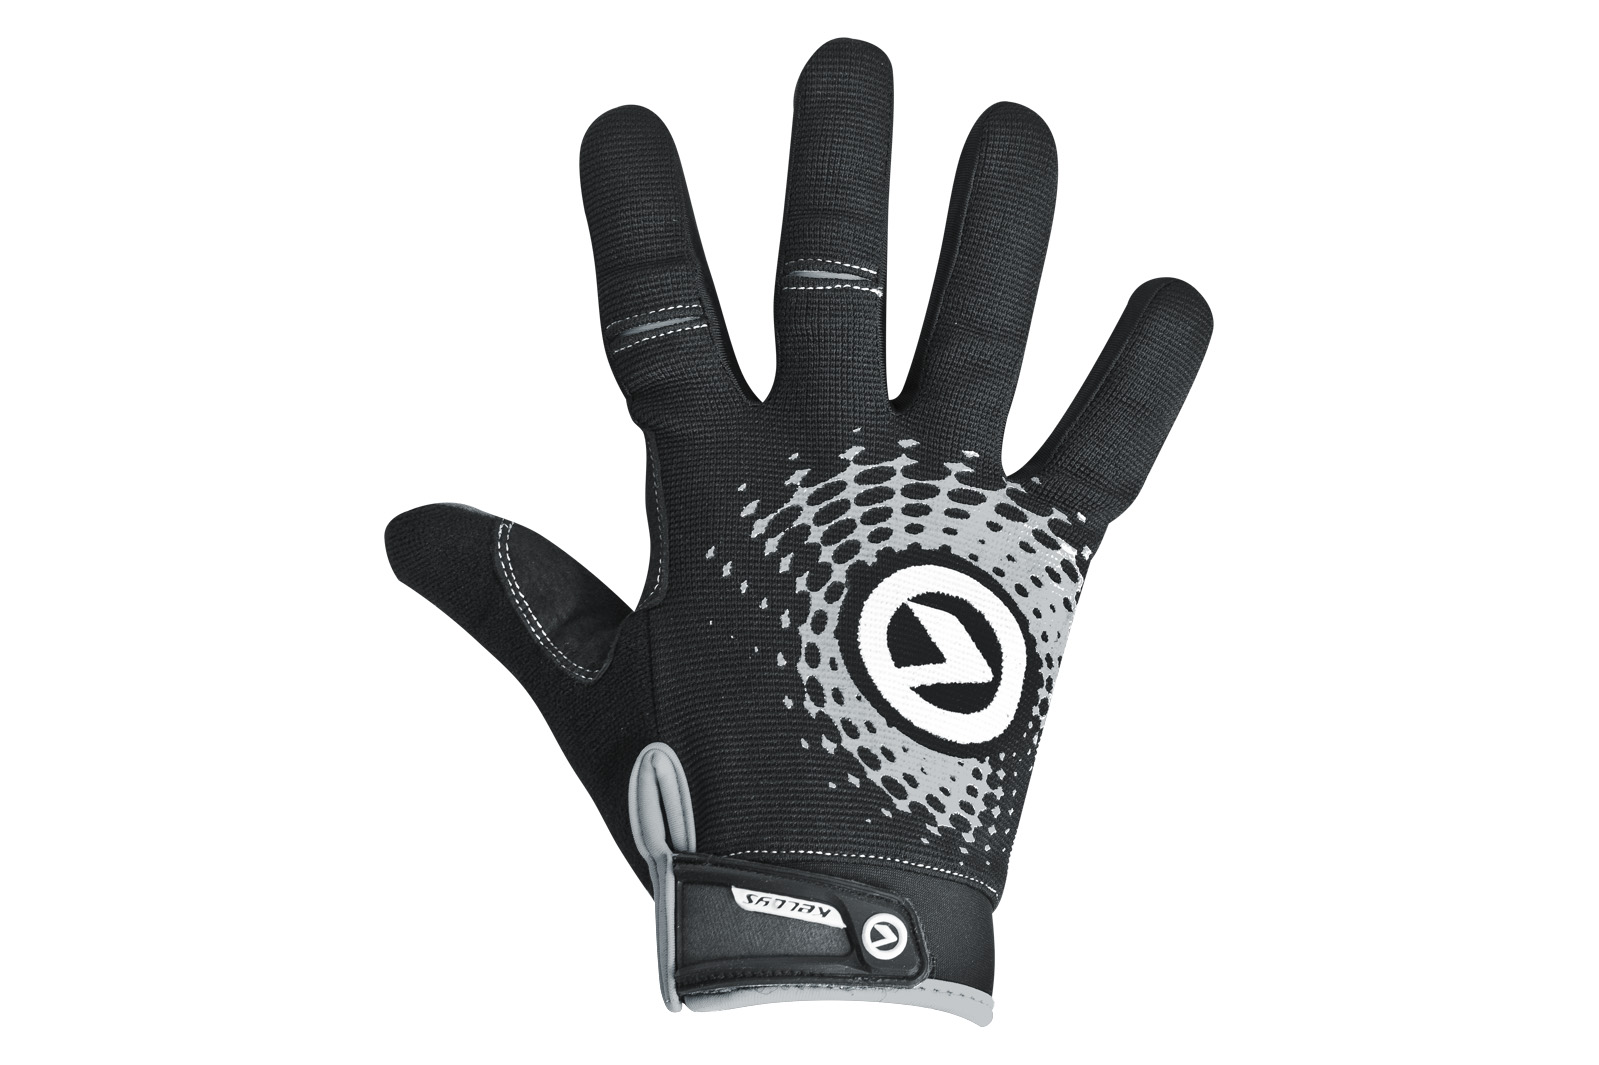 Handschuhe IMPACT long black-grey XS - Handschuhe IMPACT long black-grey XS